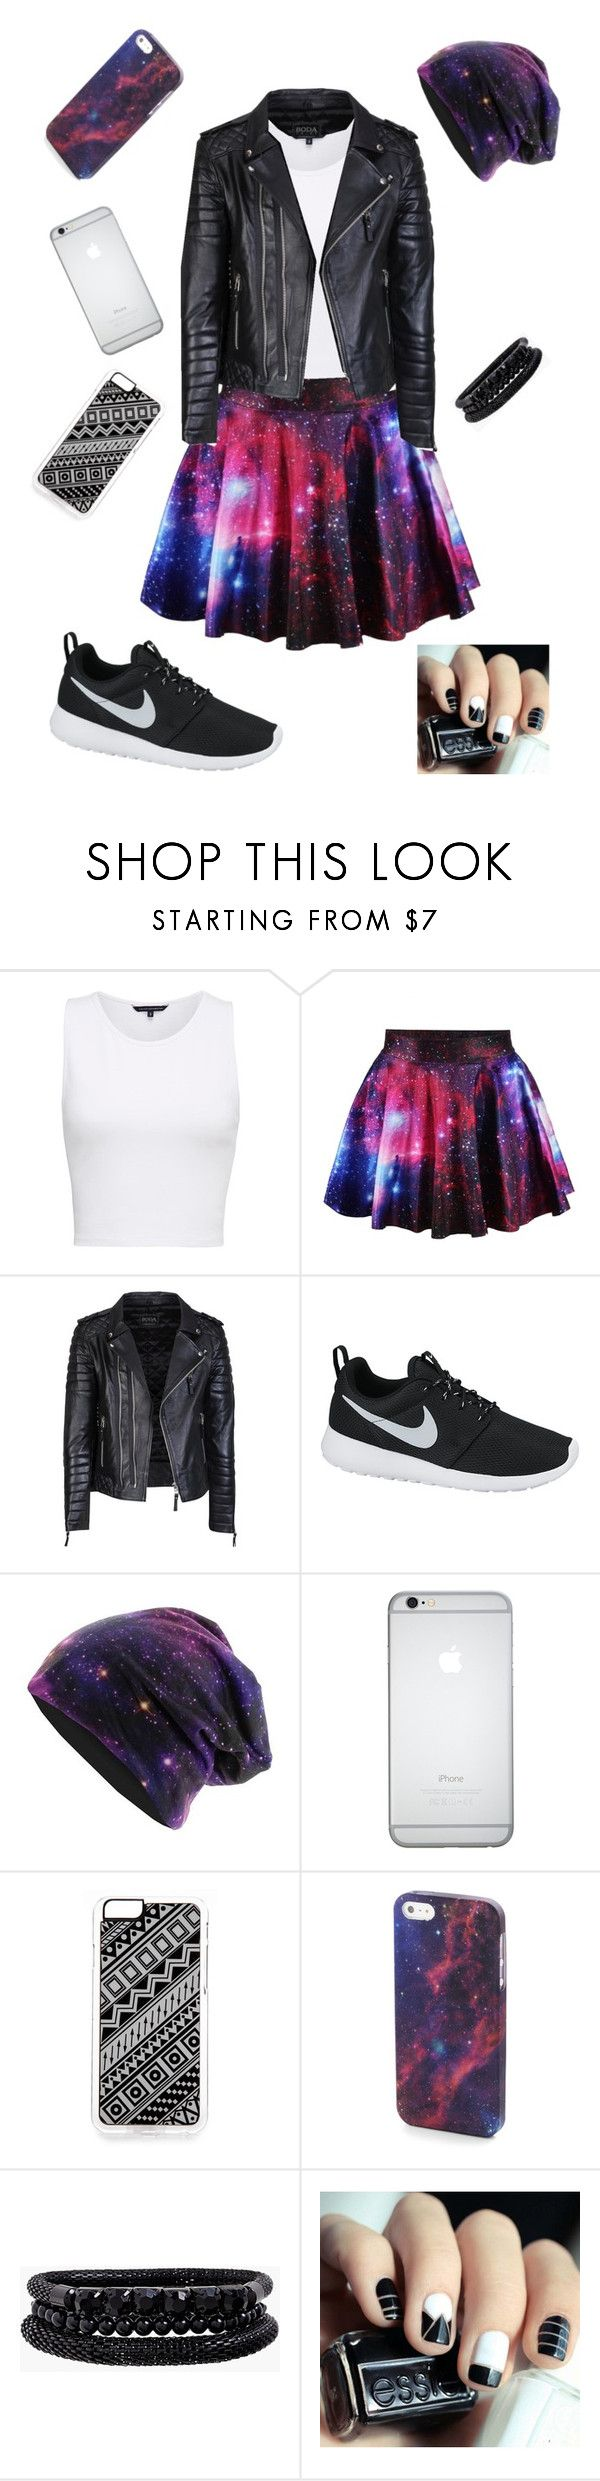 """""""My skater girl look..."""" by soniashus1 ❤ liked on Polyvore featuring French Connection, NIKE, Zero Gravity and Spring Street"""